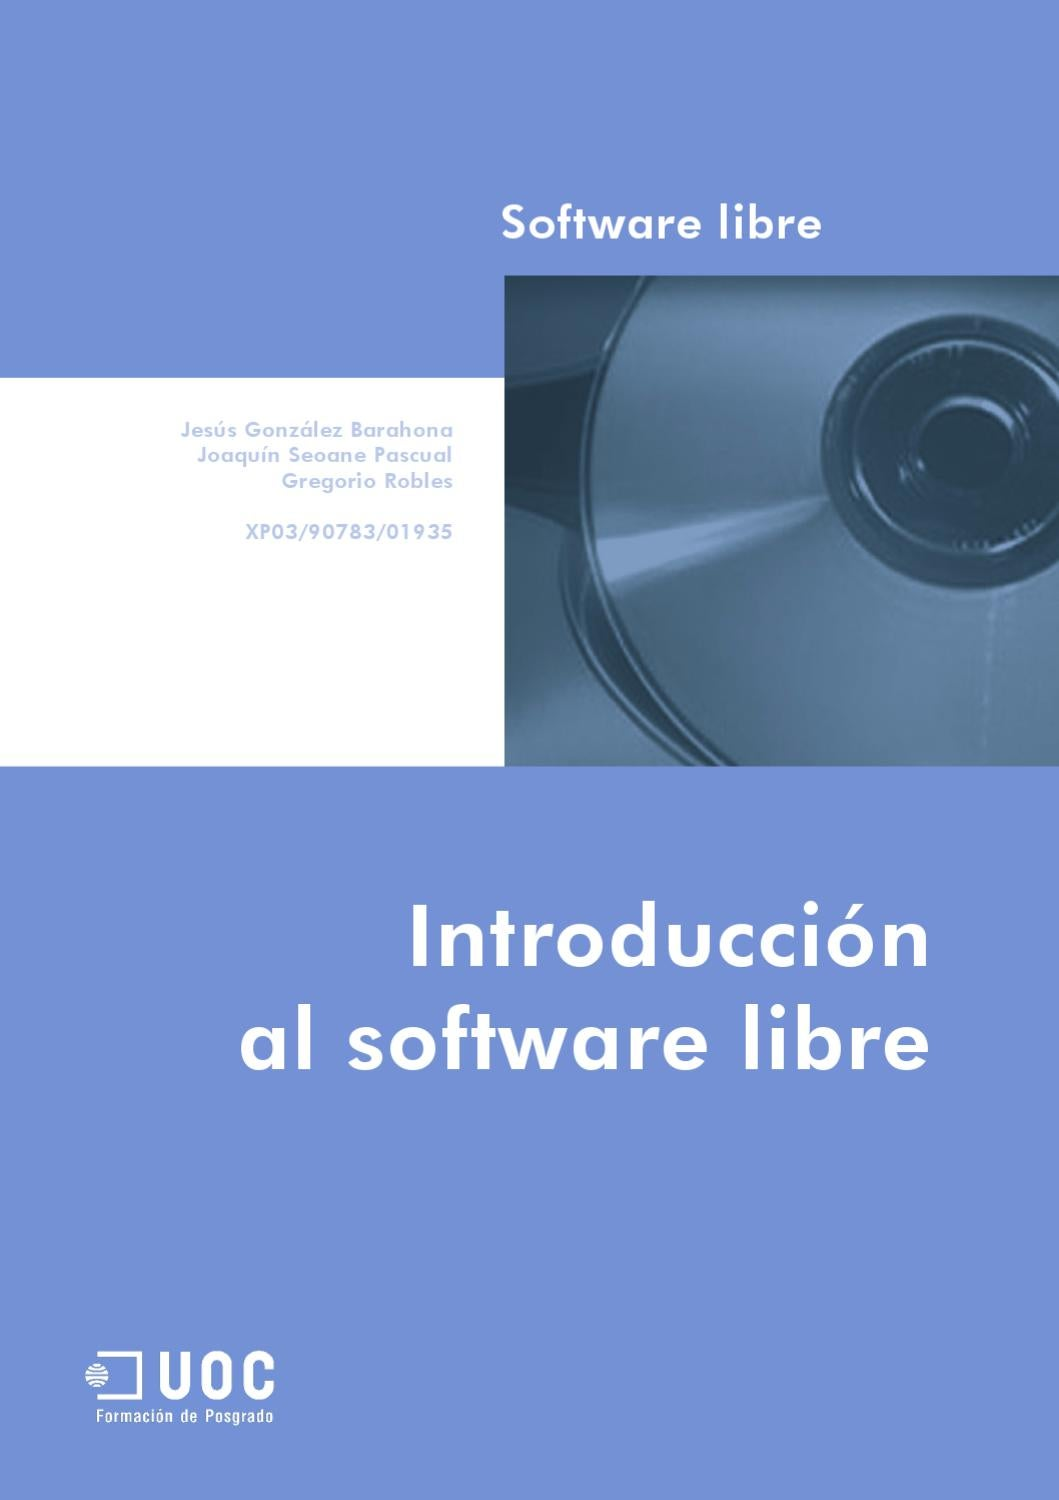 Software Libre Edicion De Video 001 Introduccion Al Software Libre By Soluciones Libres